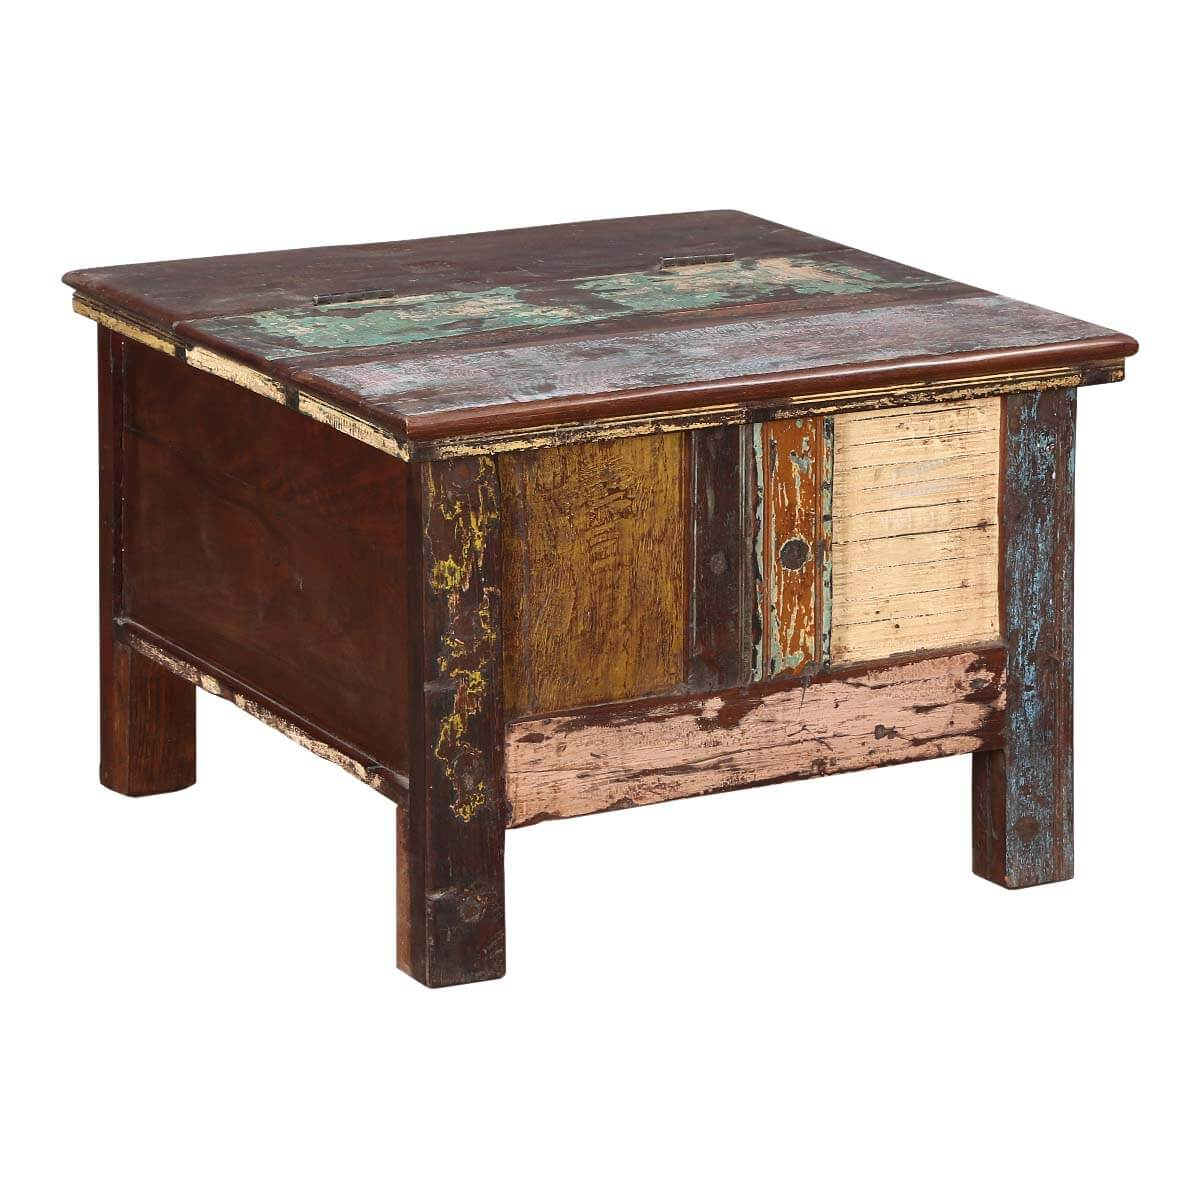 Rustic Patches Reclaimed Wood Standing Coffee Table Chest